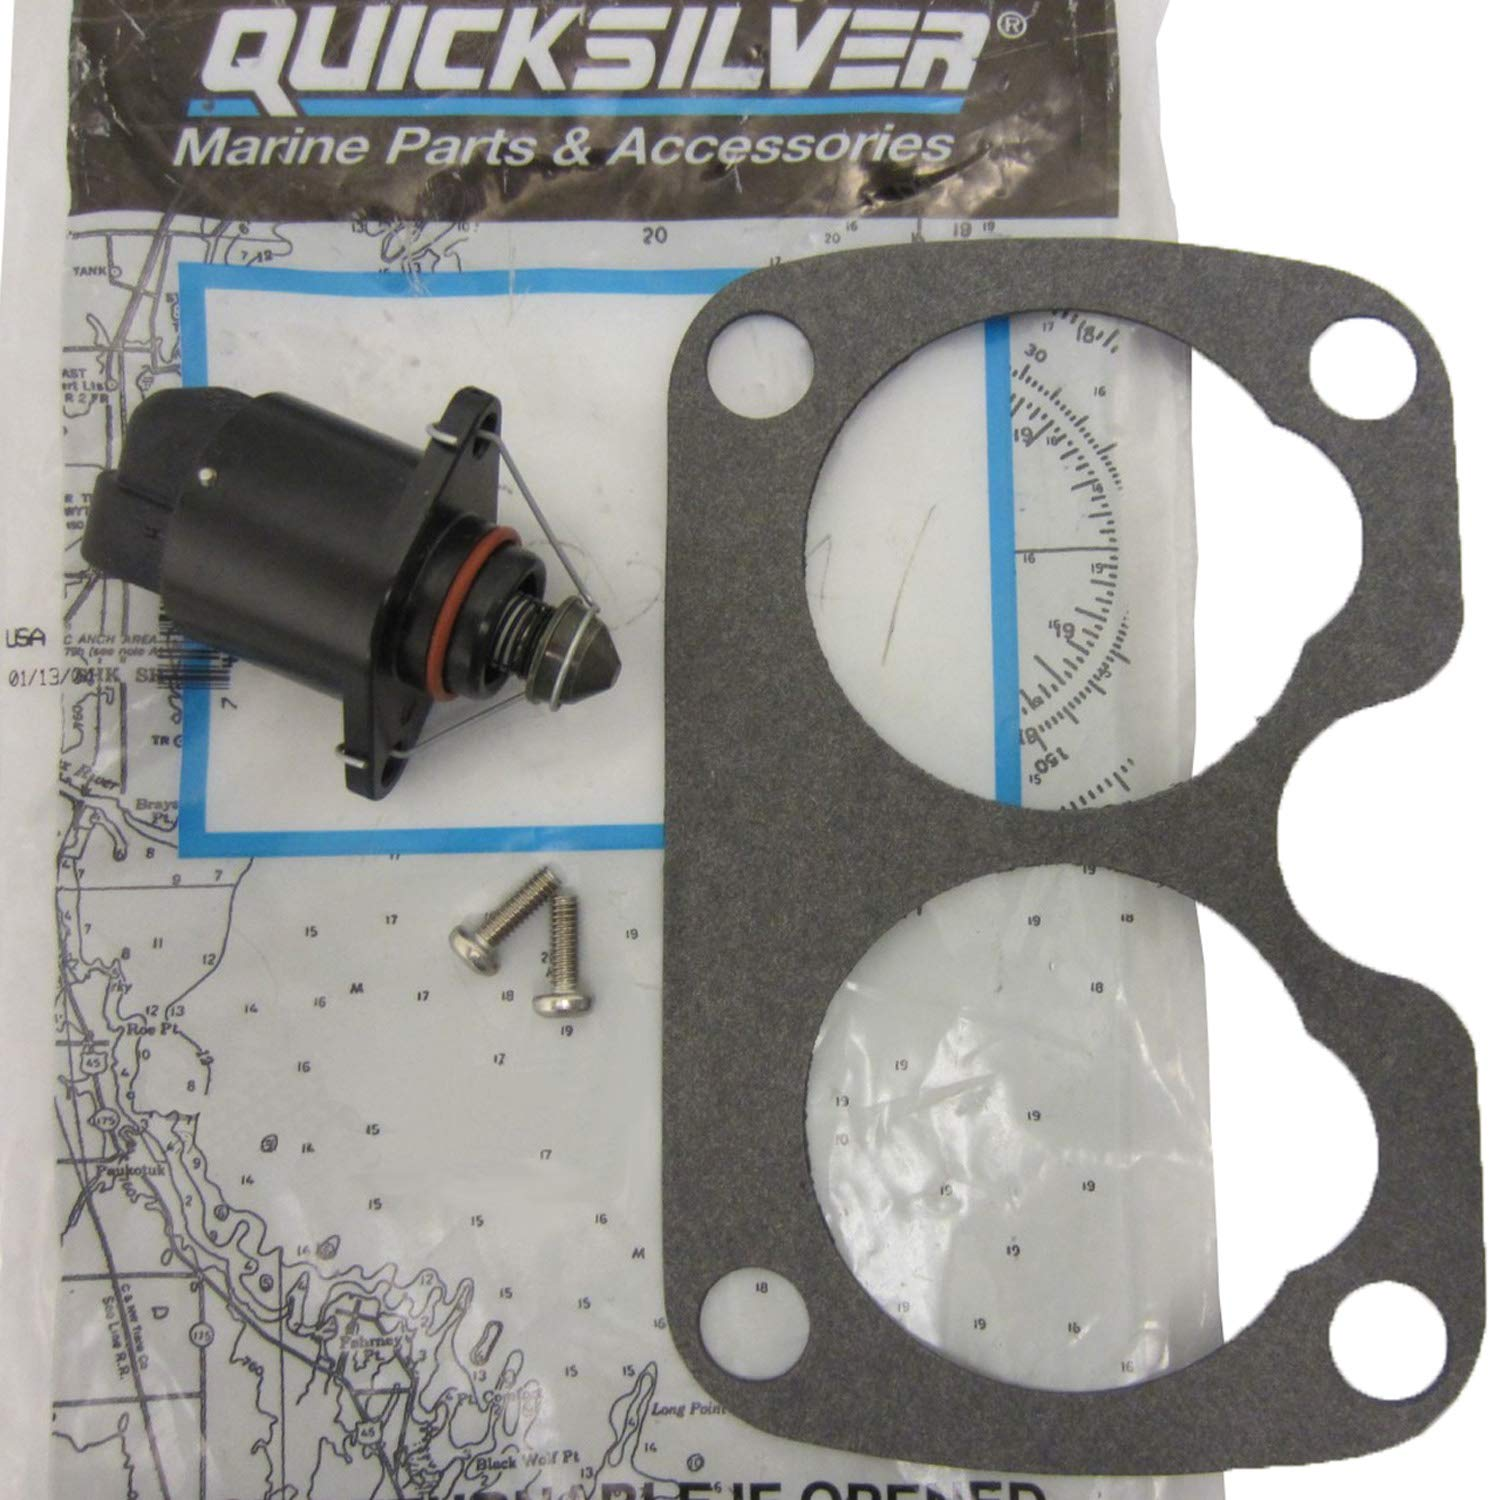 MERCURY/QUICKSILVER PARTS 805224A 1 - Mercury/Quicksilver Parts Iac Valve-305/350/454/502 ** 80522